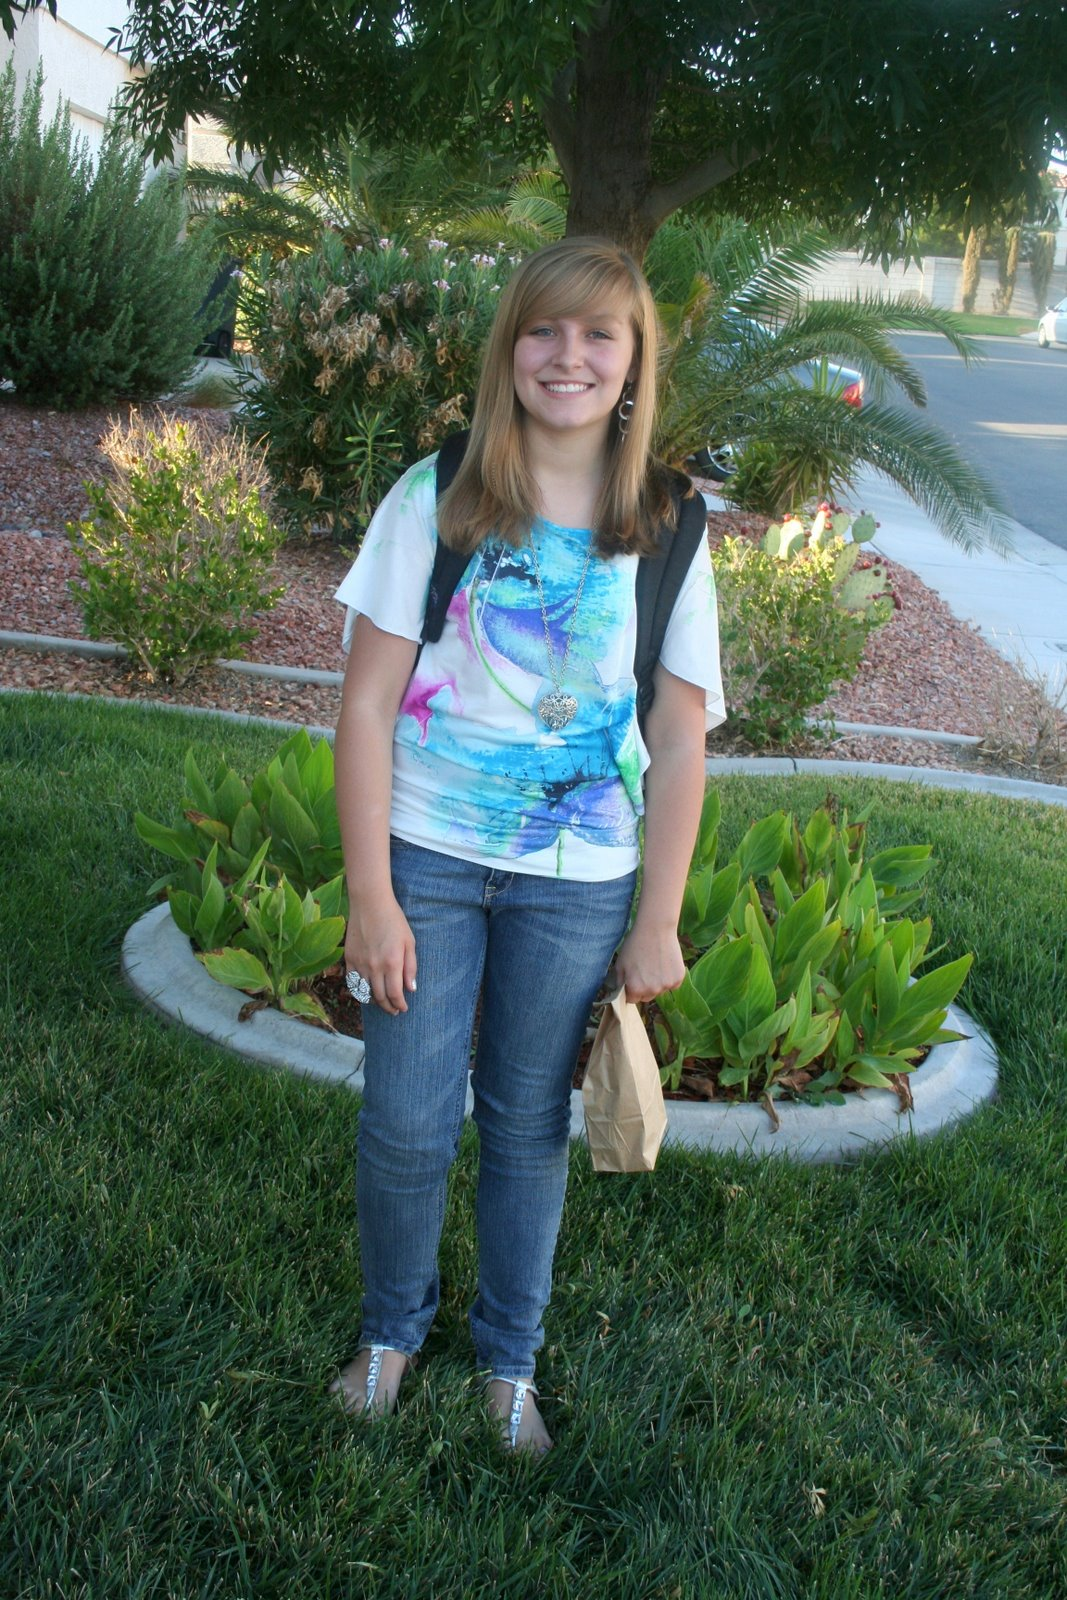 First Day Of School Outfit 8th Grade 2013 First day of 7th grade